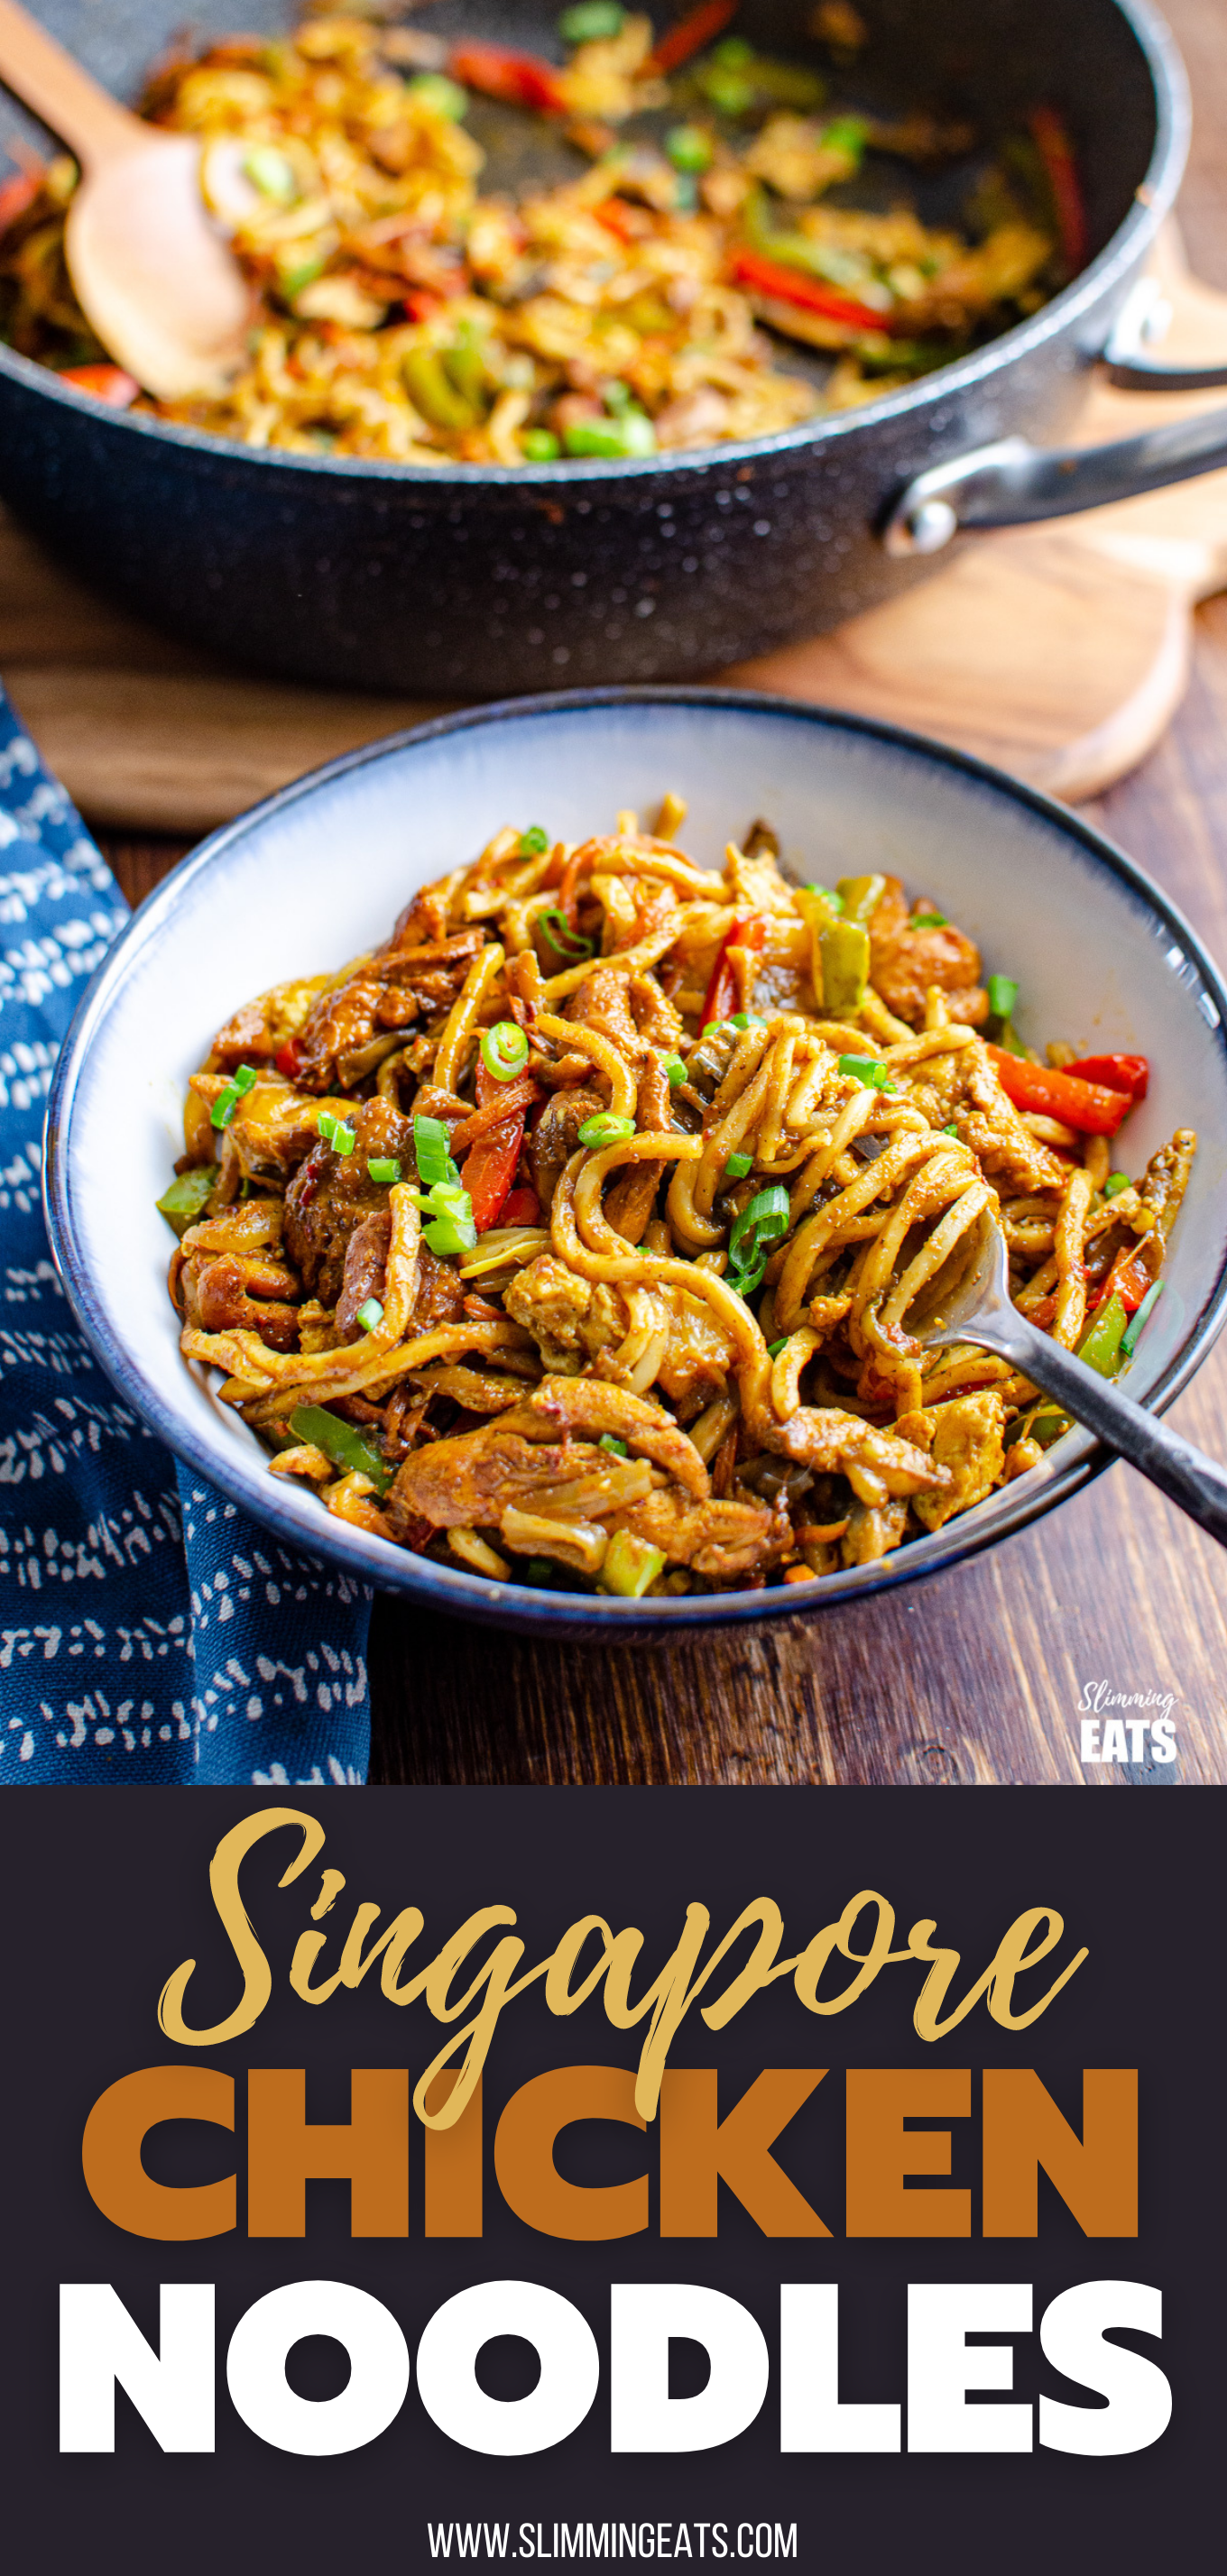 Delicious Singapore Chicken Noodles in a blue rimmed bowl with black handled metal fork